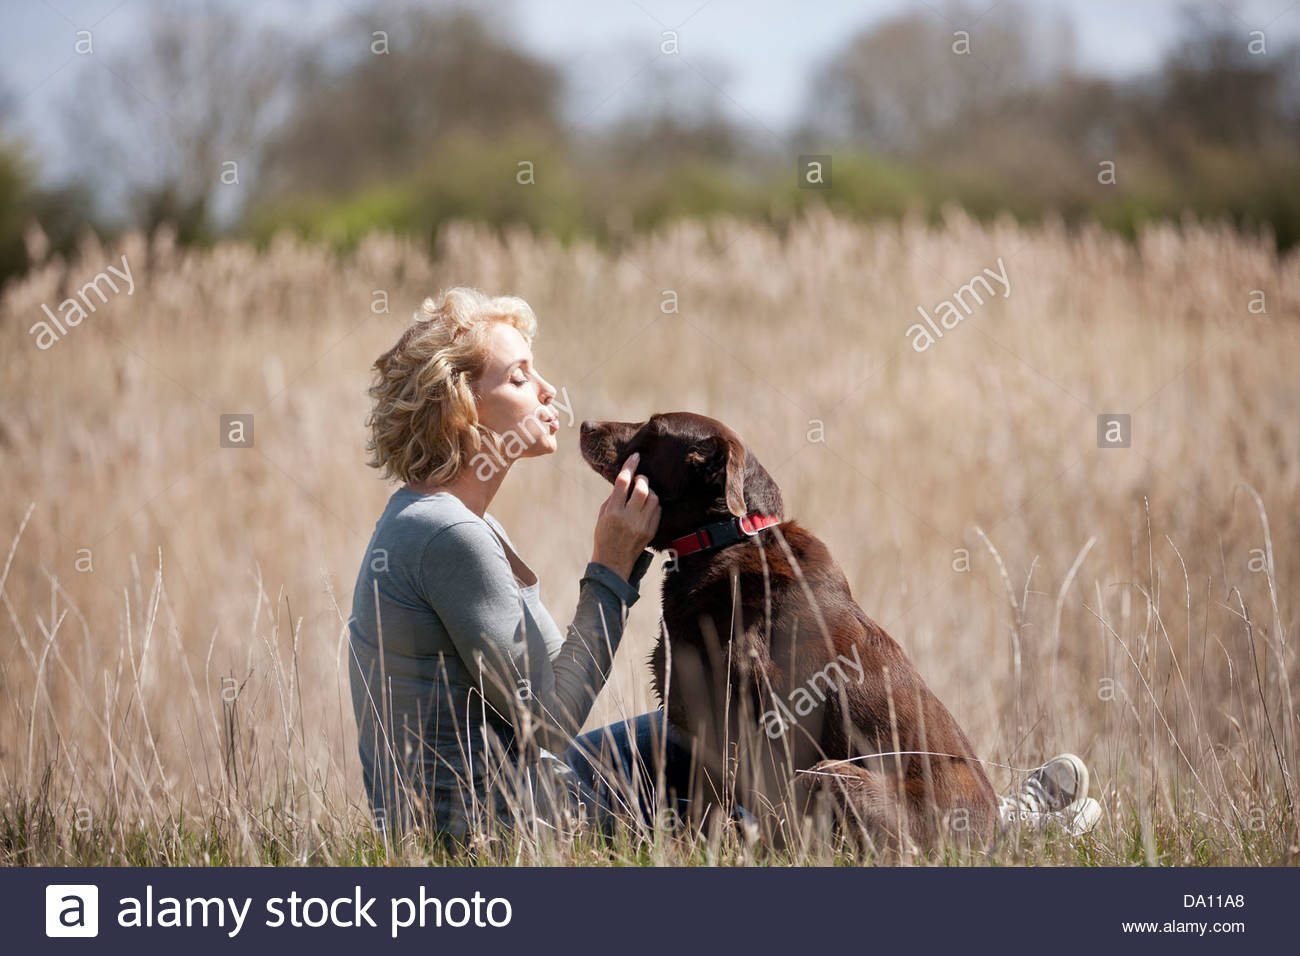 A mature woman sitting on the grass with her dog - Stock Image